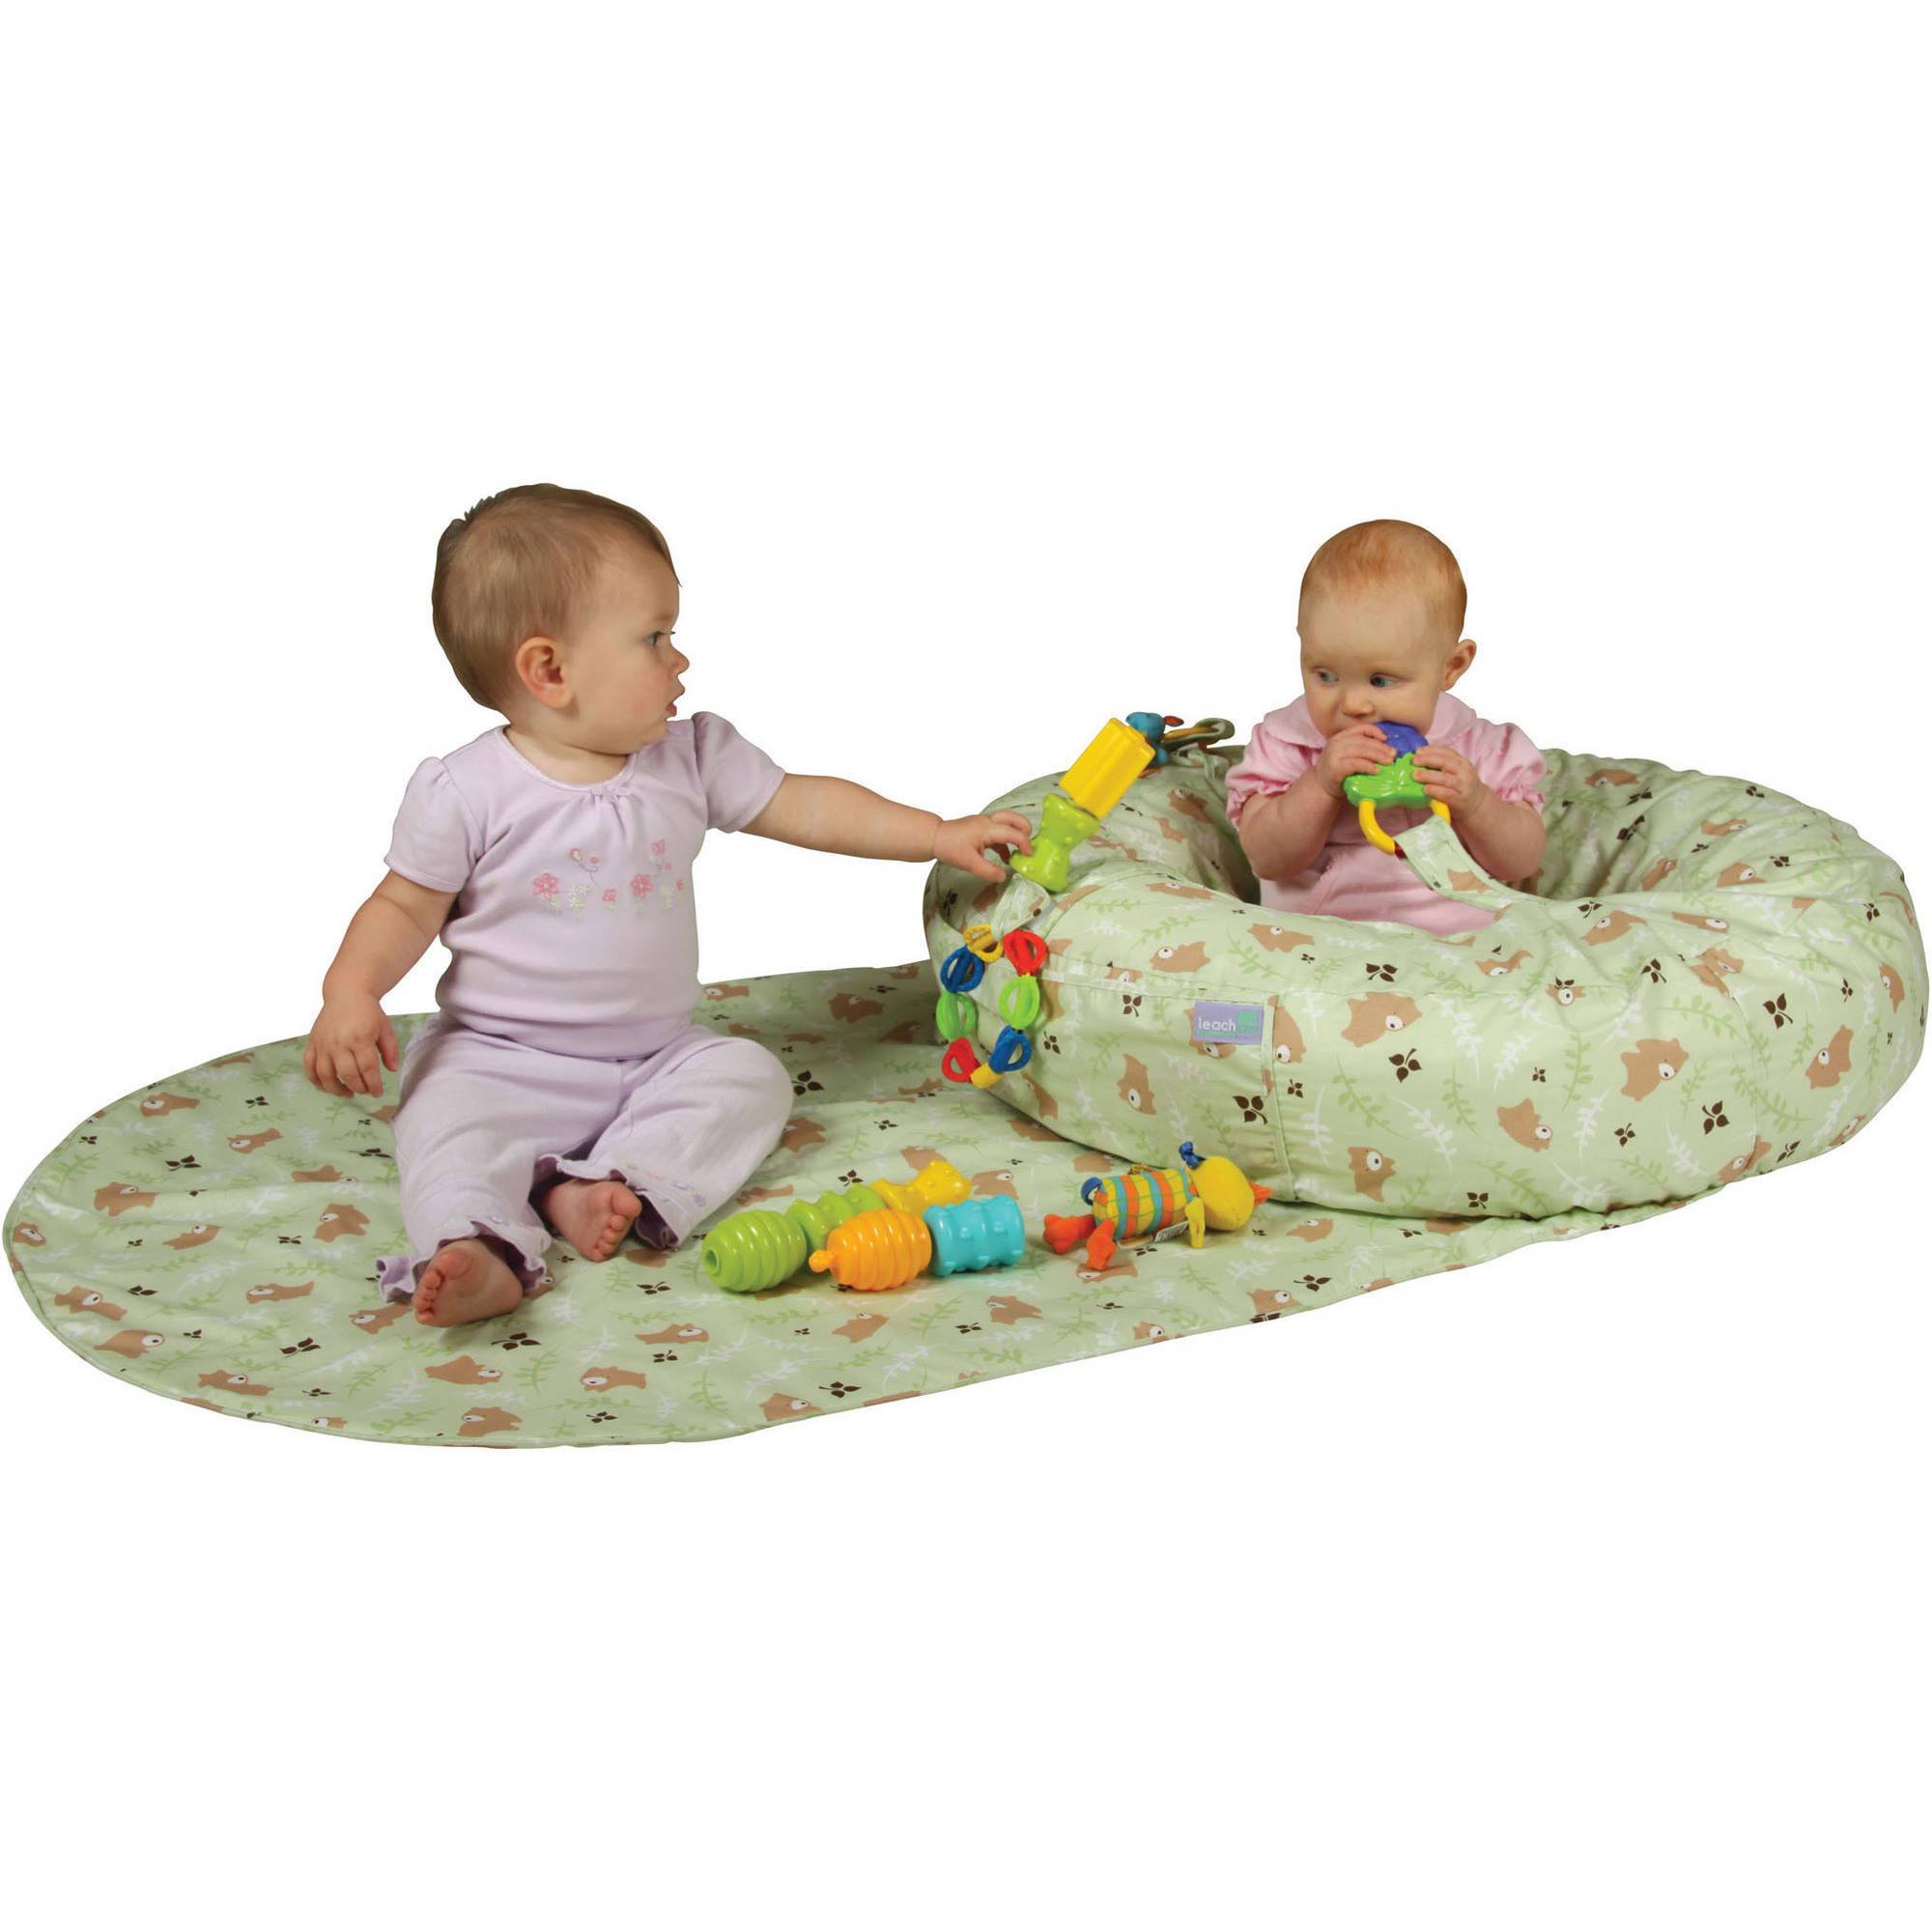 Leachco PlayPod, Green Bears